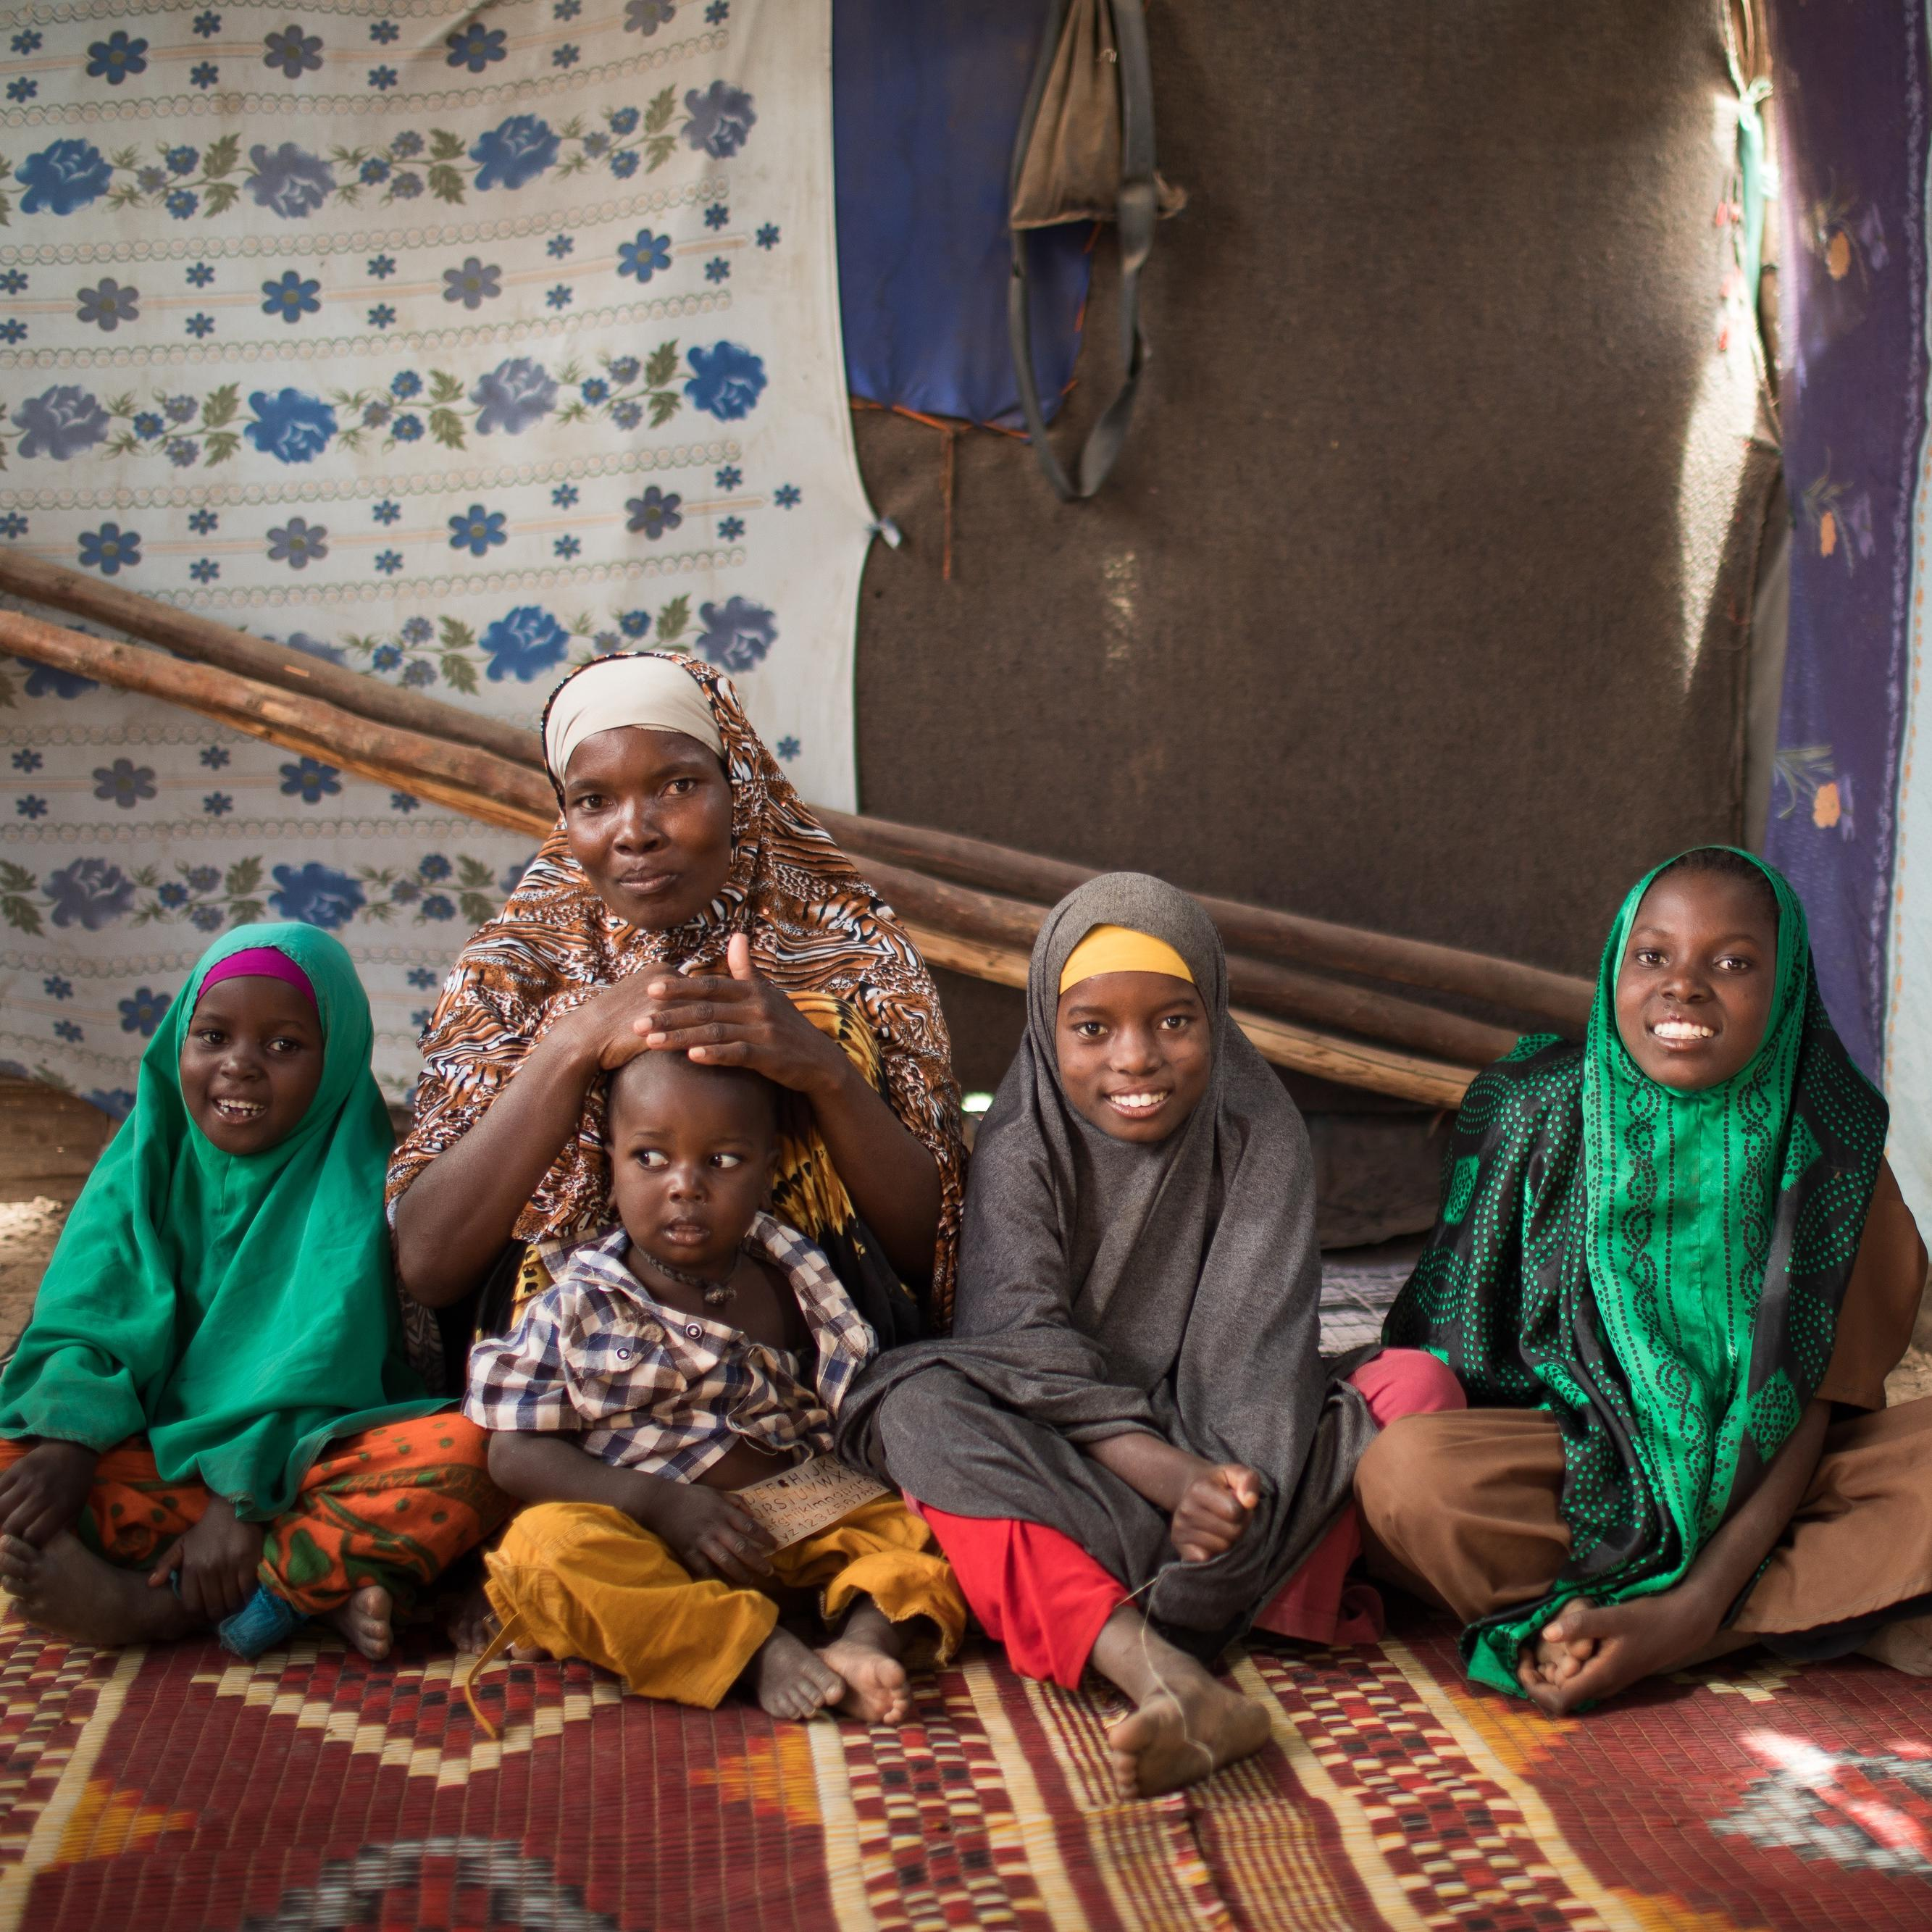 A mother with her four children sitting on a carpet